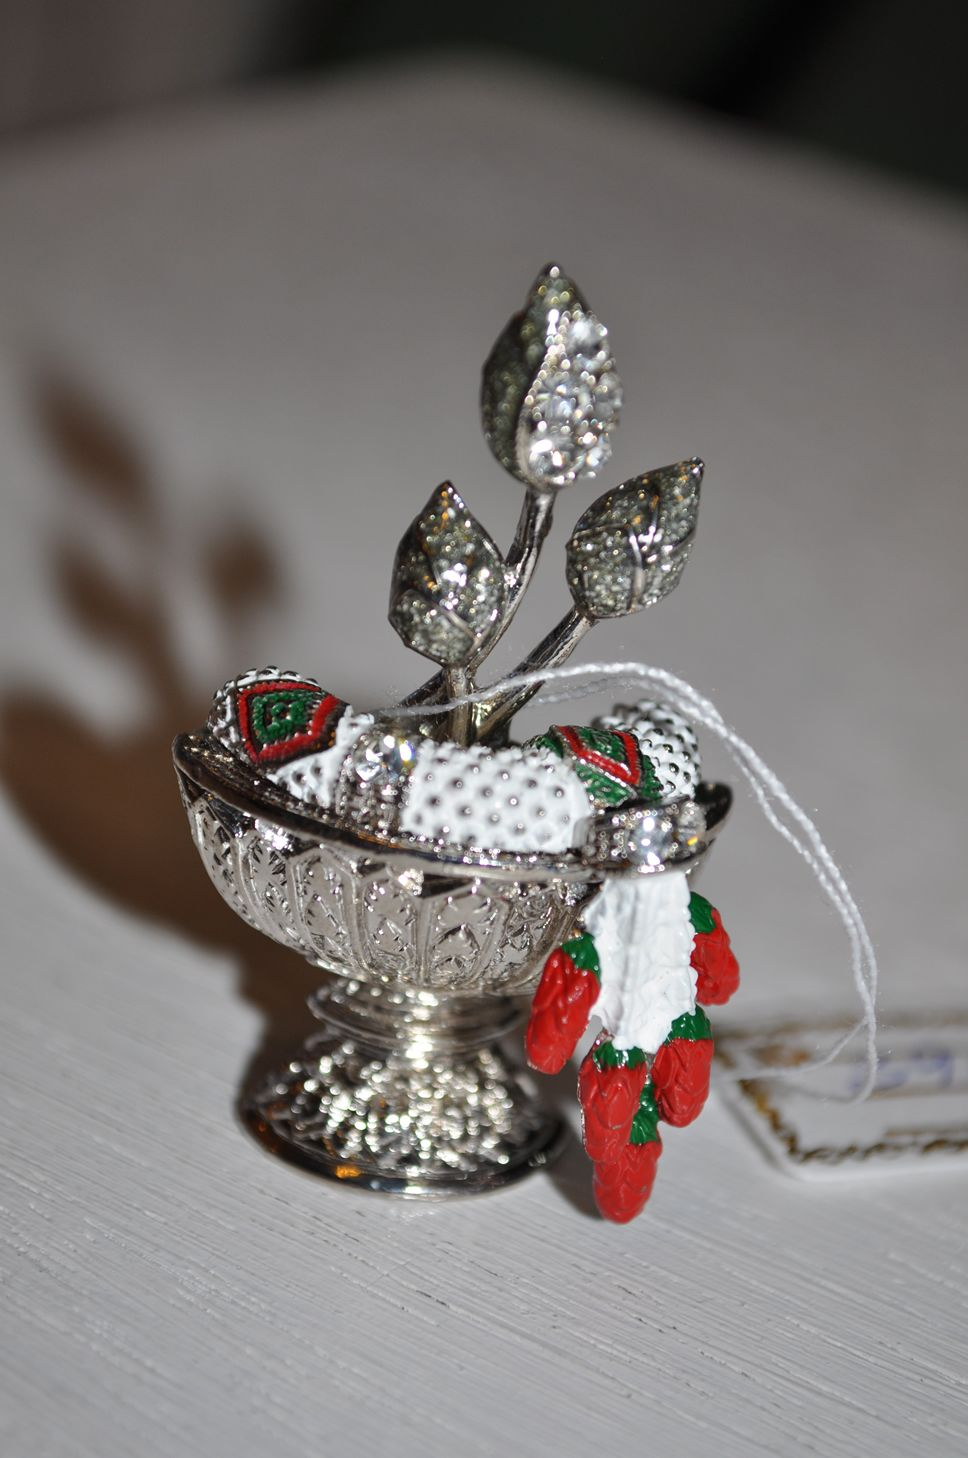 Cool Brooch... http://crisantemo.co/product-category/accessories/